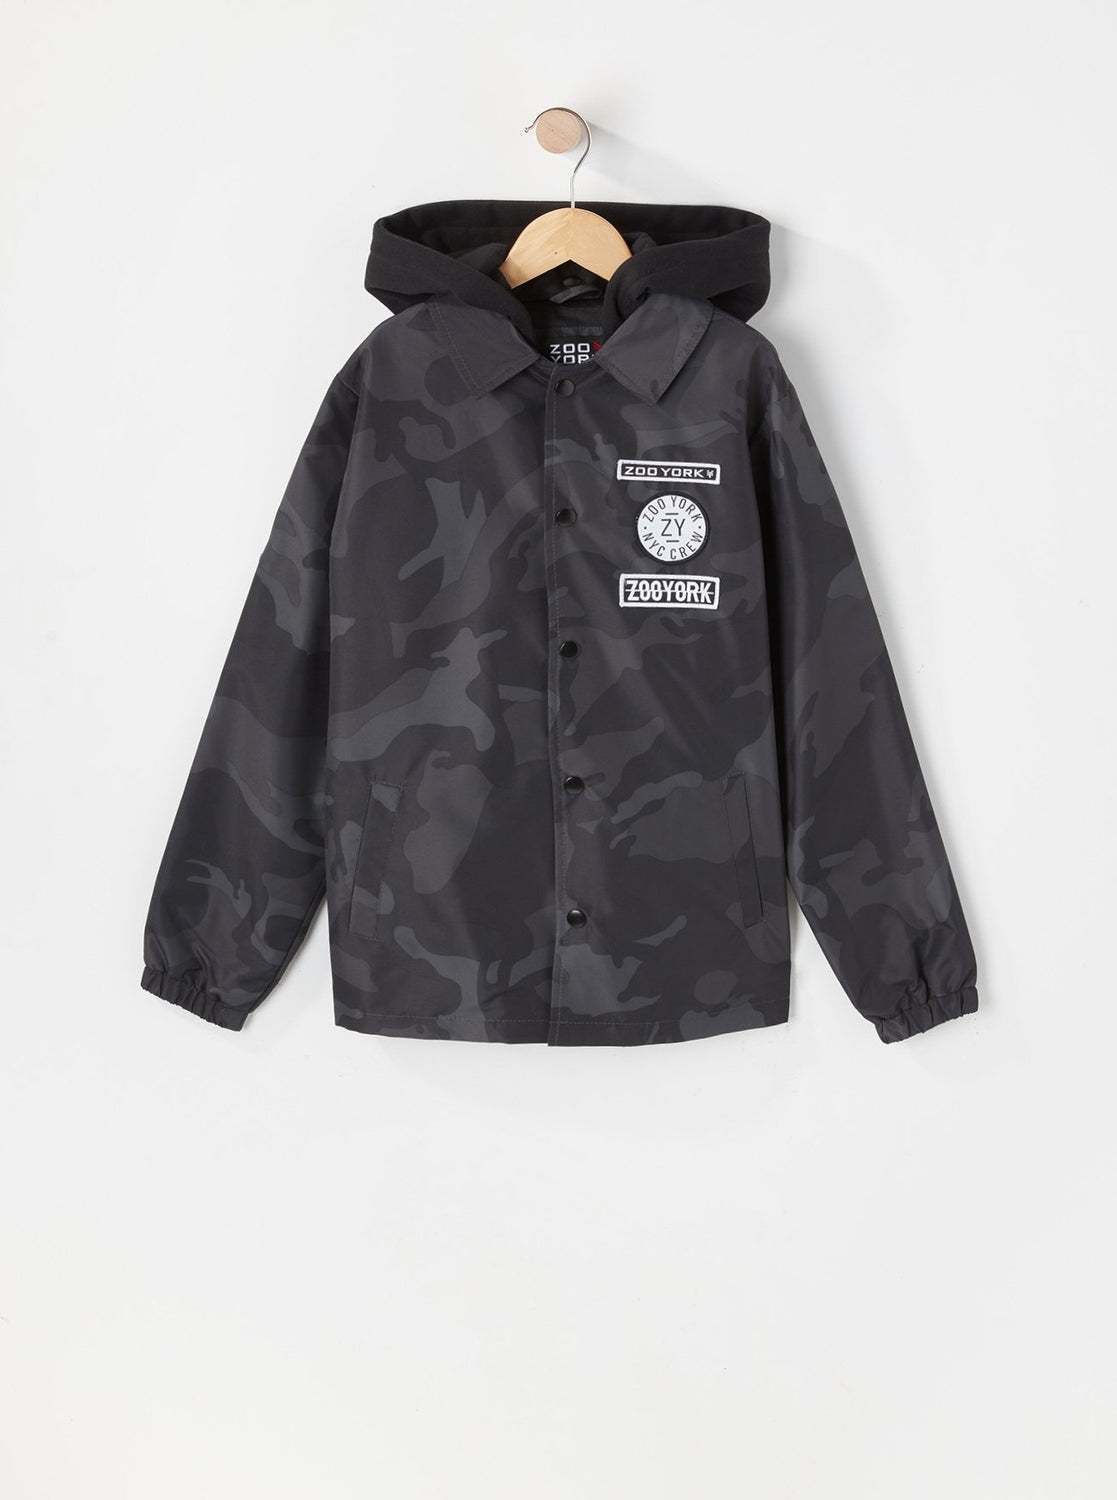 Zoo York Youth Patch Logo Coach Jacket Black with White